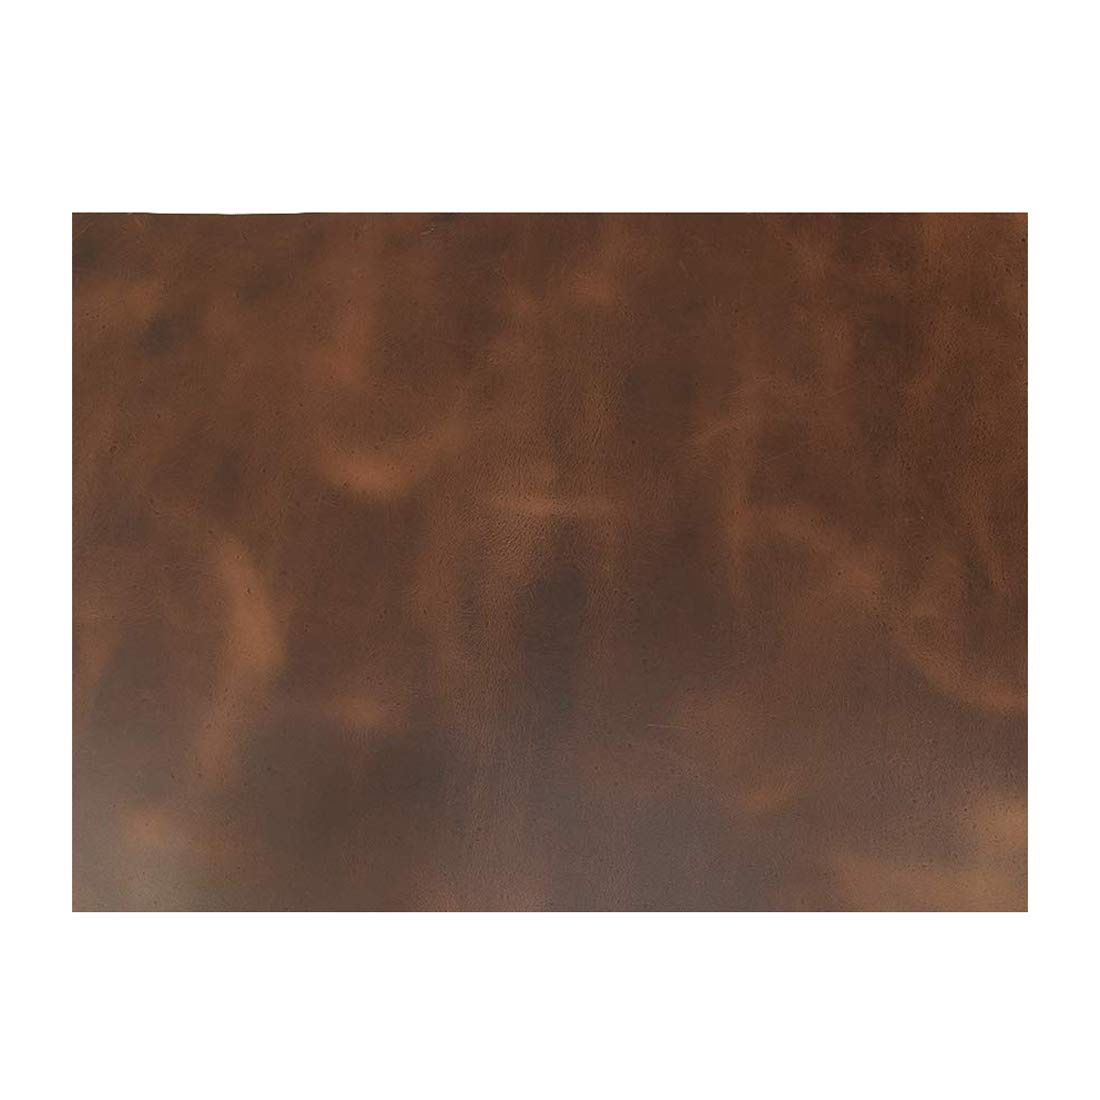 Hide & Drink, Leather Square (16 x 18 in.) for Crafts/Tooling/Hobby Workshop, Medium Weight (1.8mm) :: Bourbon Brown